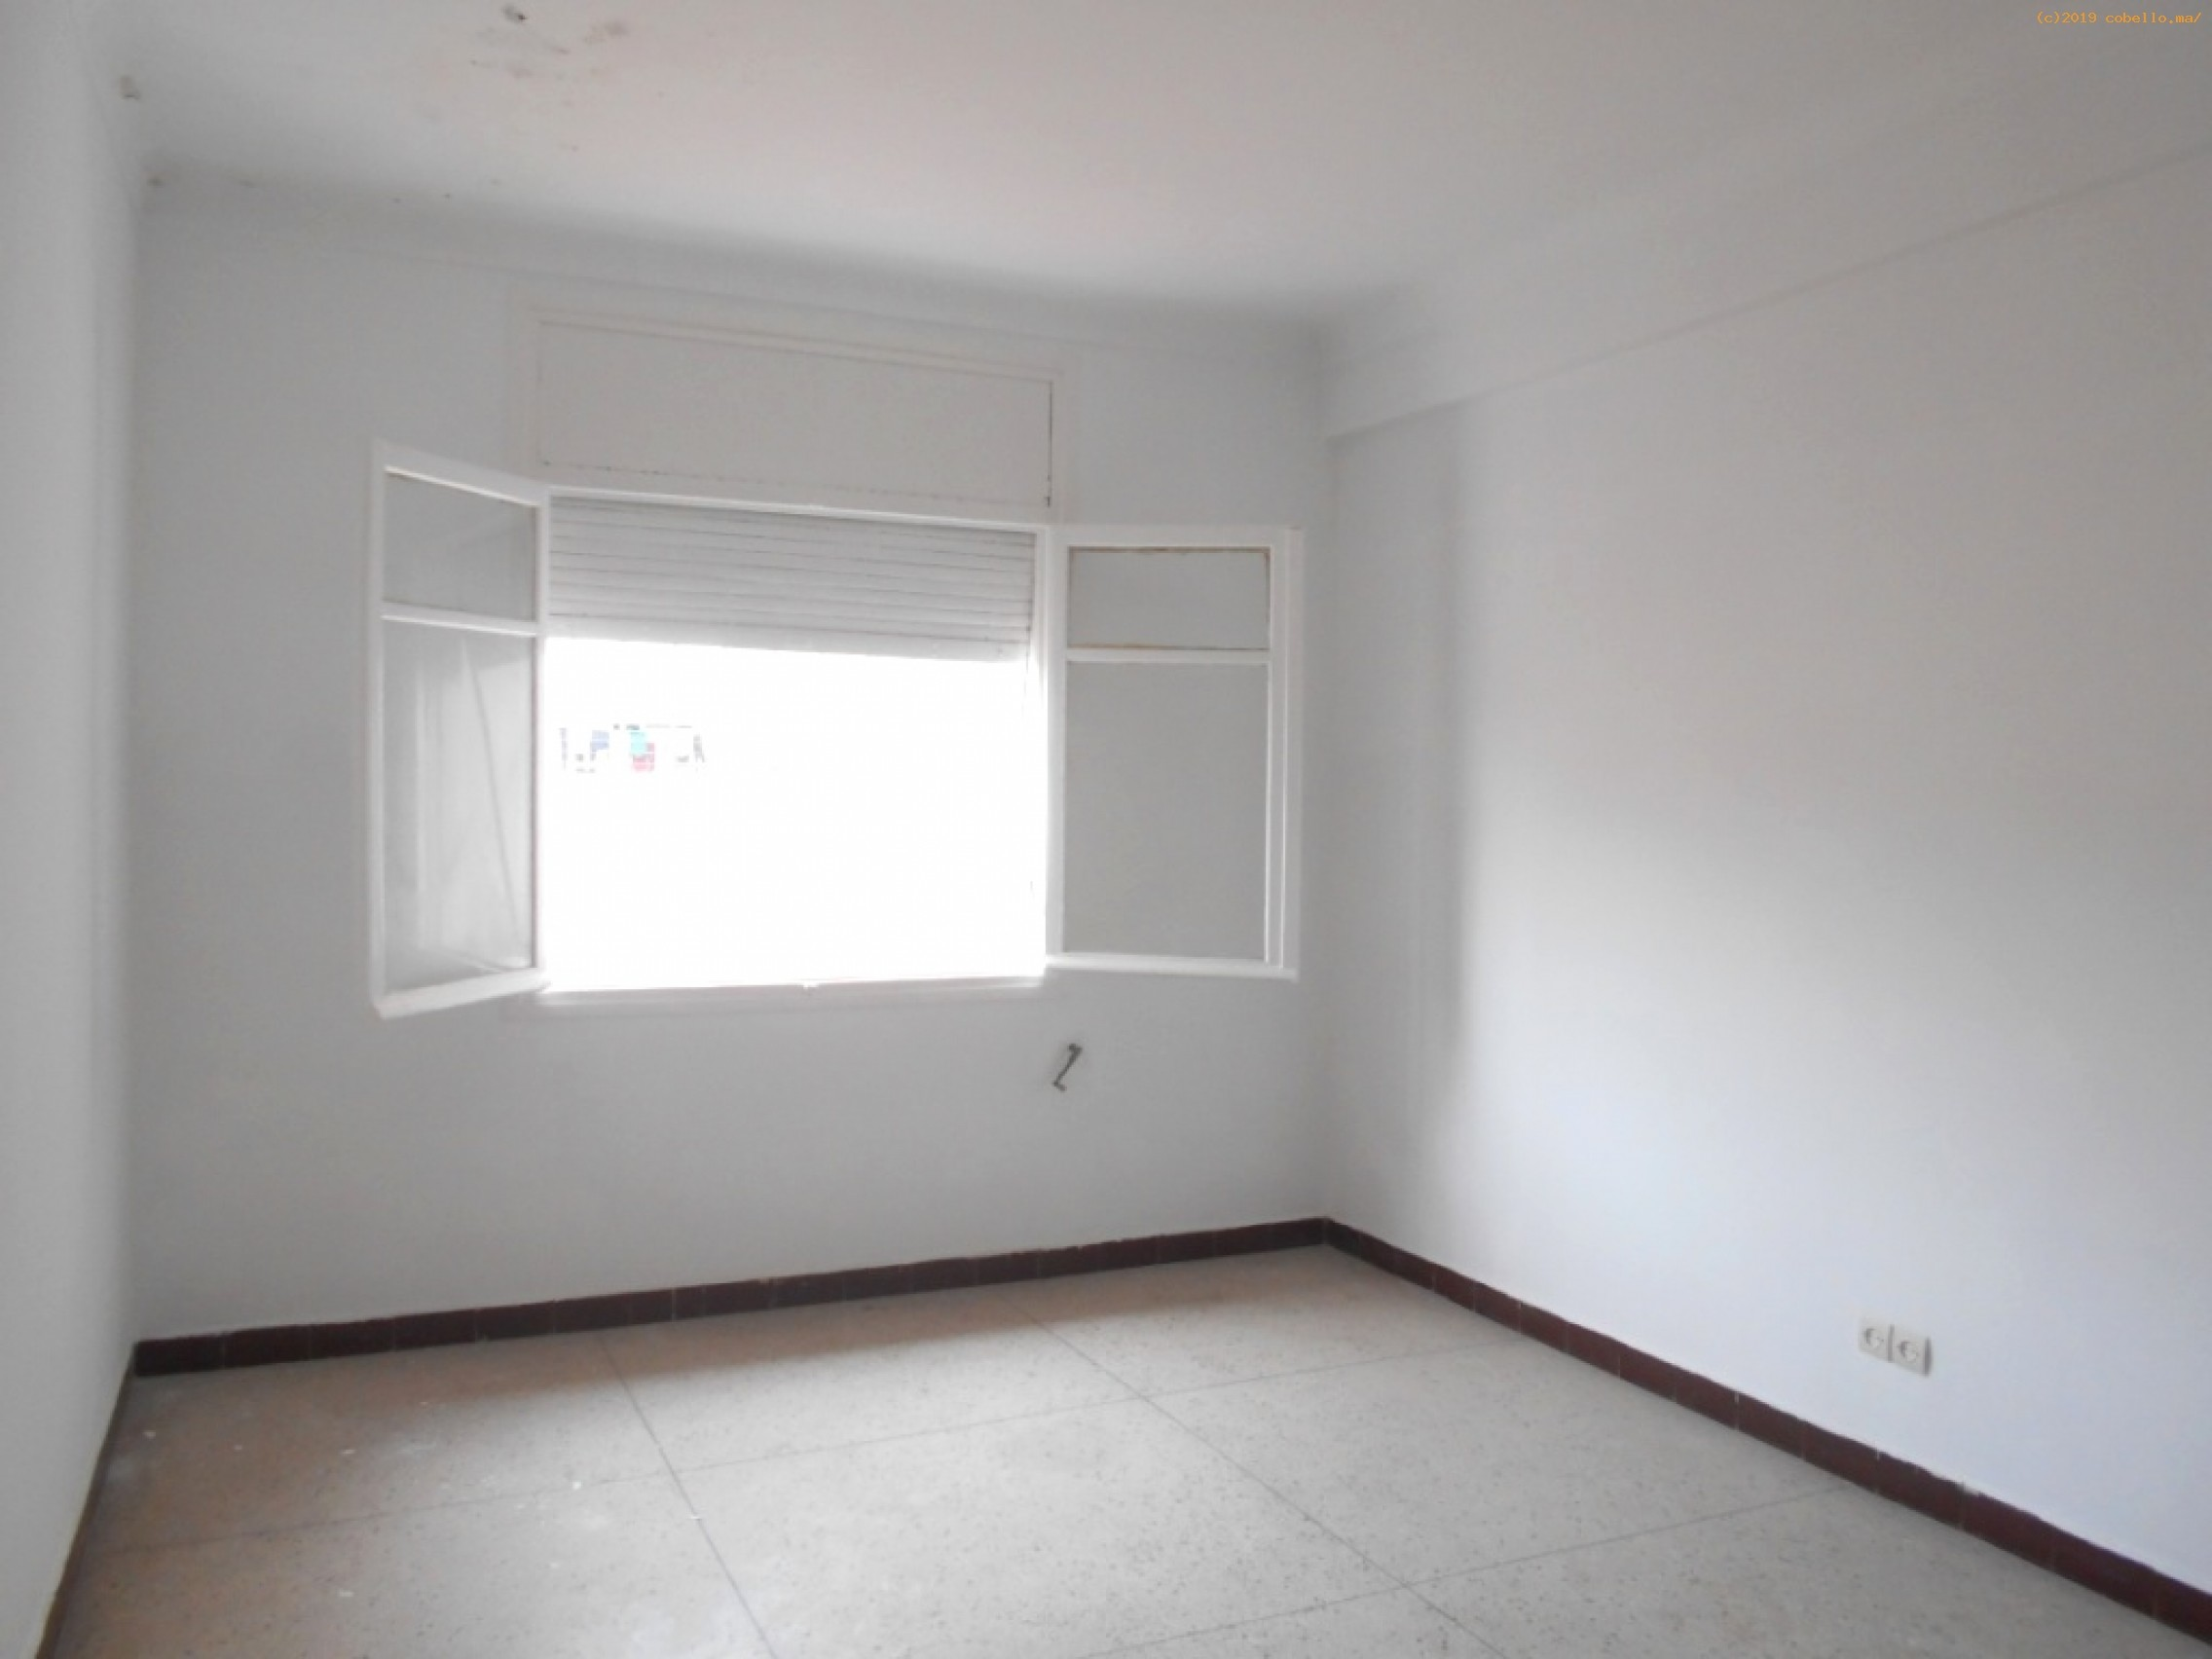 Vente <strong>Appartement</strong> Rabat  <strong>79 m2</strong>